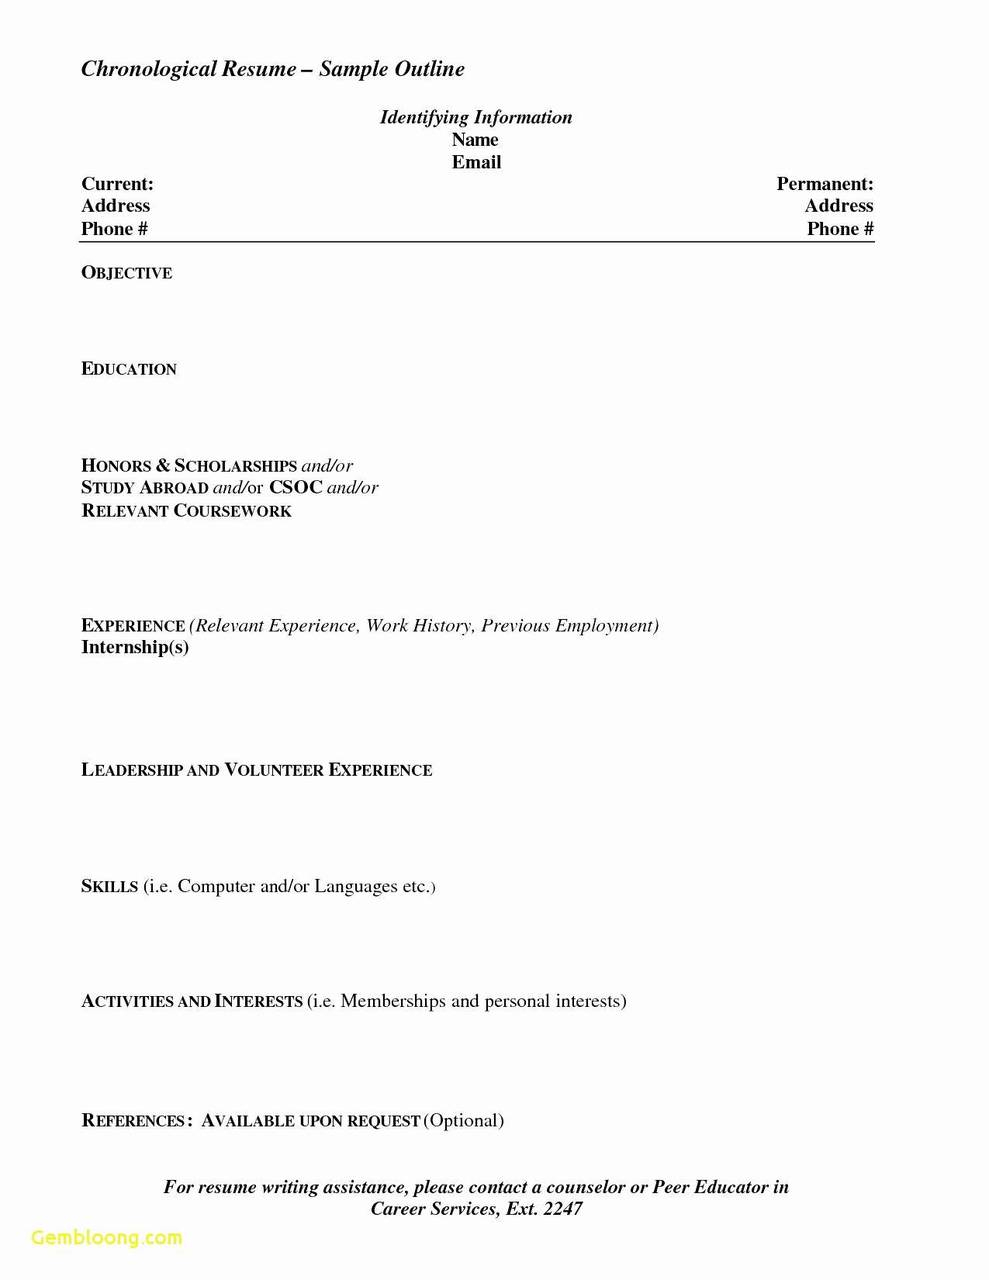 Resume for Internal Position - Internal Job Resume Unique Resume for Apply How to format A Cover